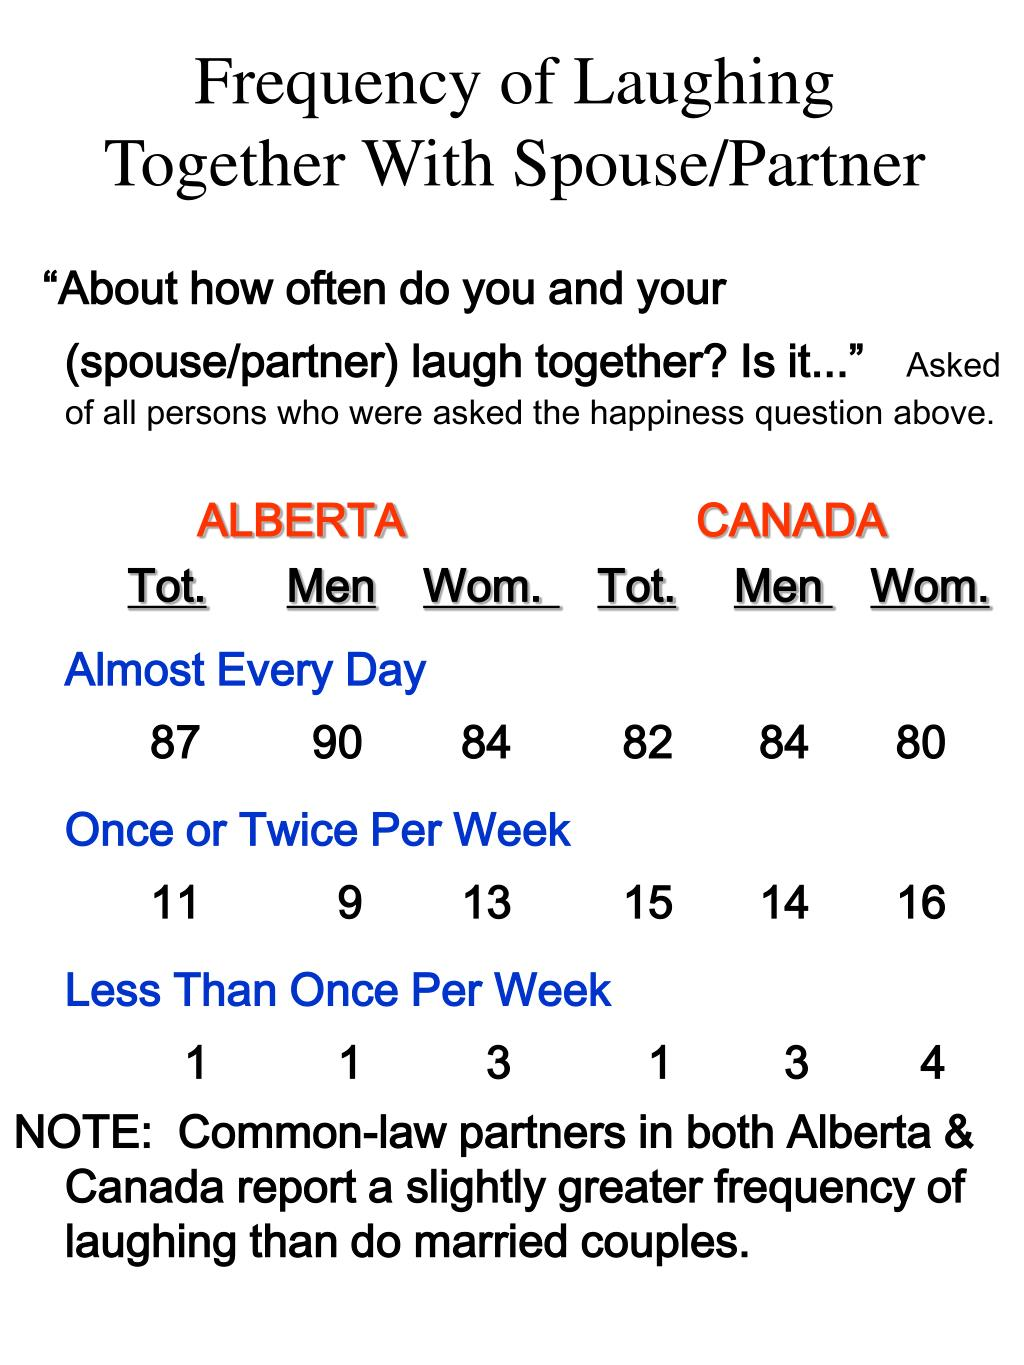 Frequency of Laughing Together With Spouse/Partner